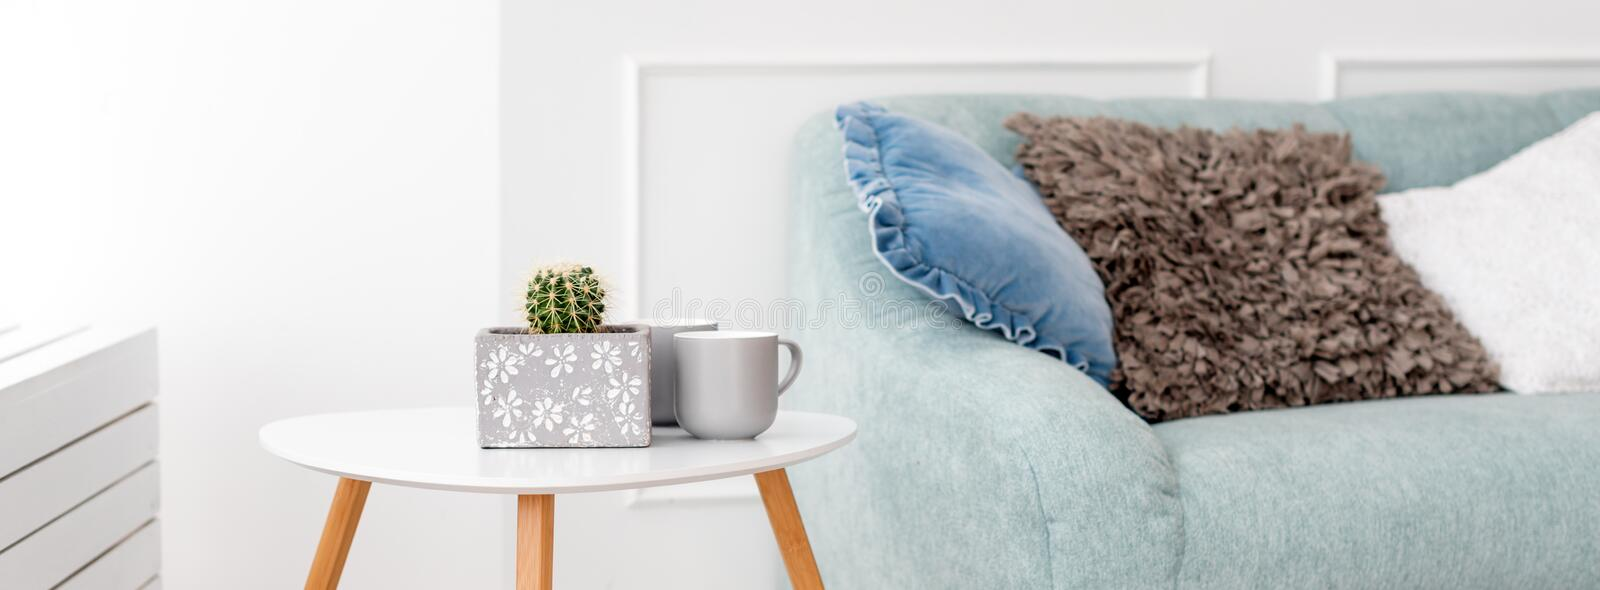 Modern wooden coffee table and cozy sofa with pillows. Living room interior and simple modern home decor concept. royalty free stock images